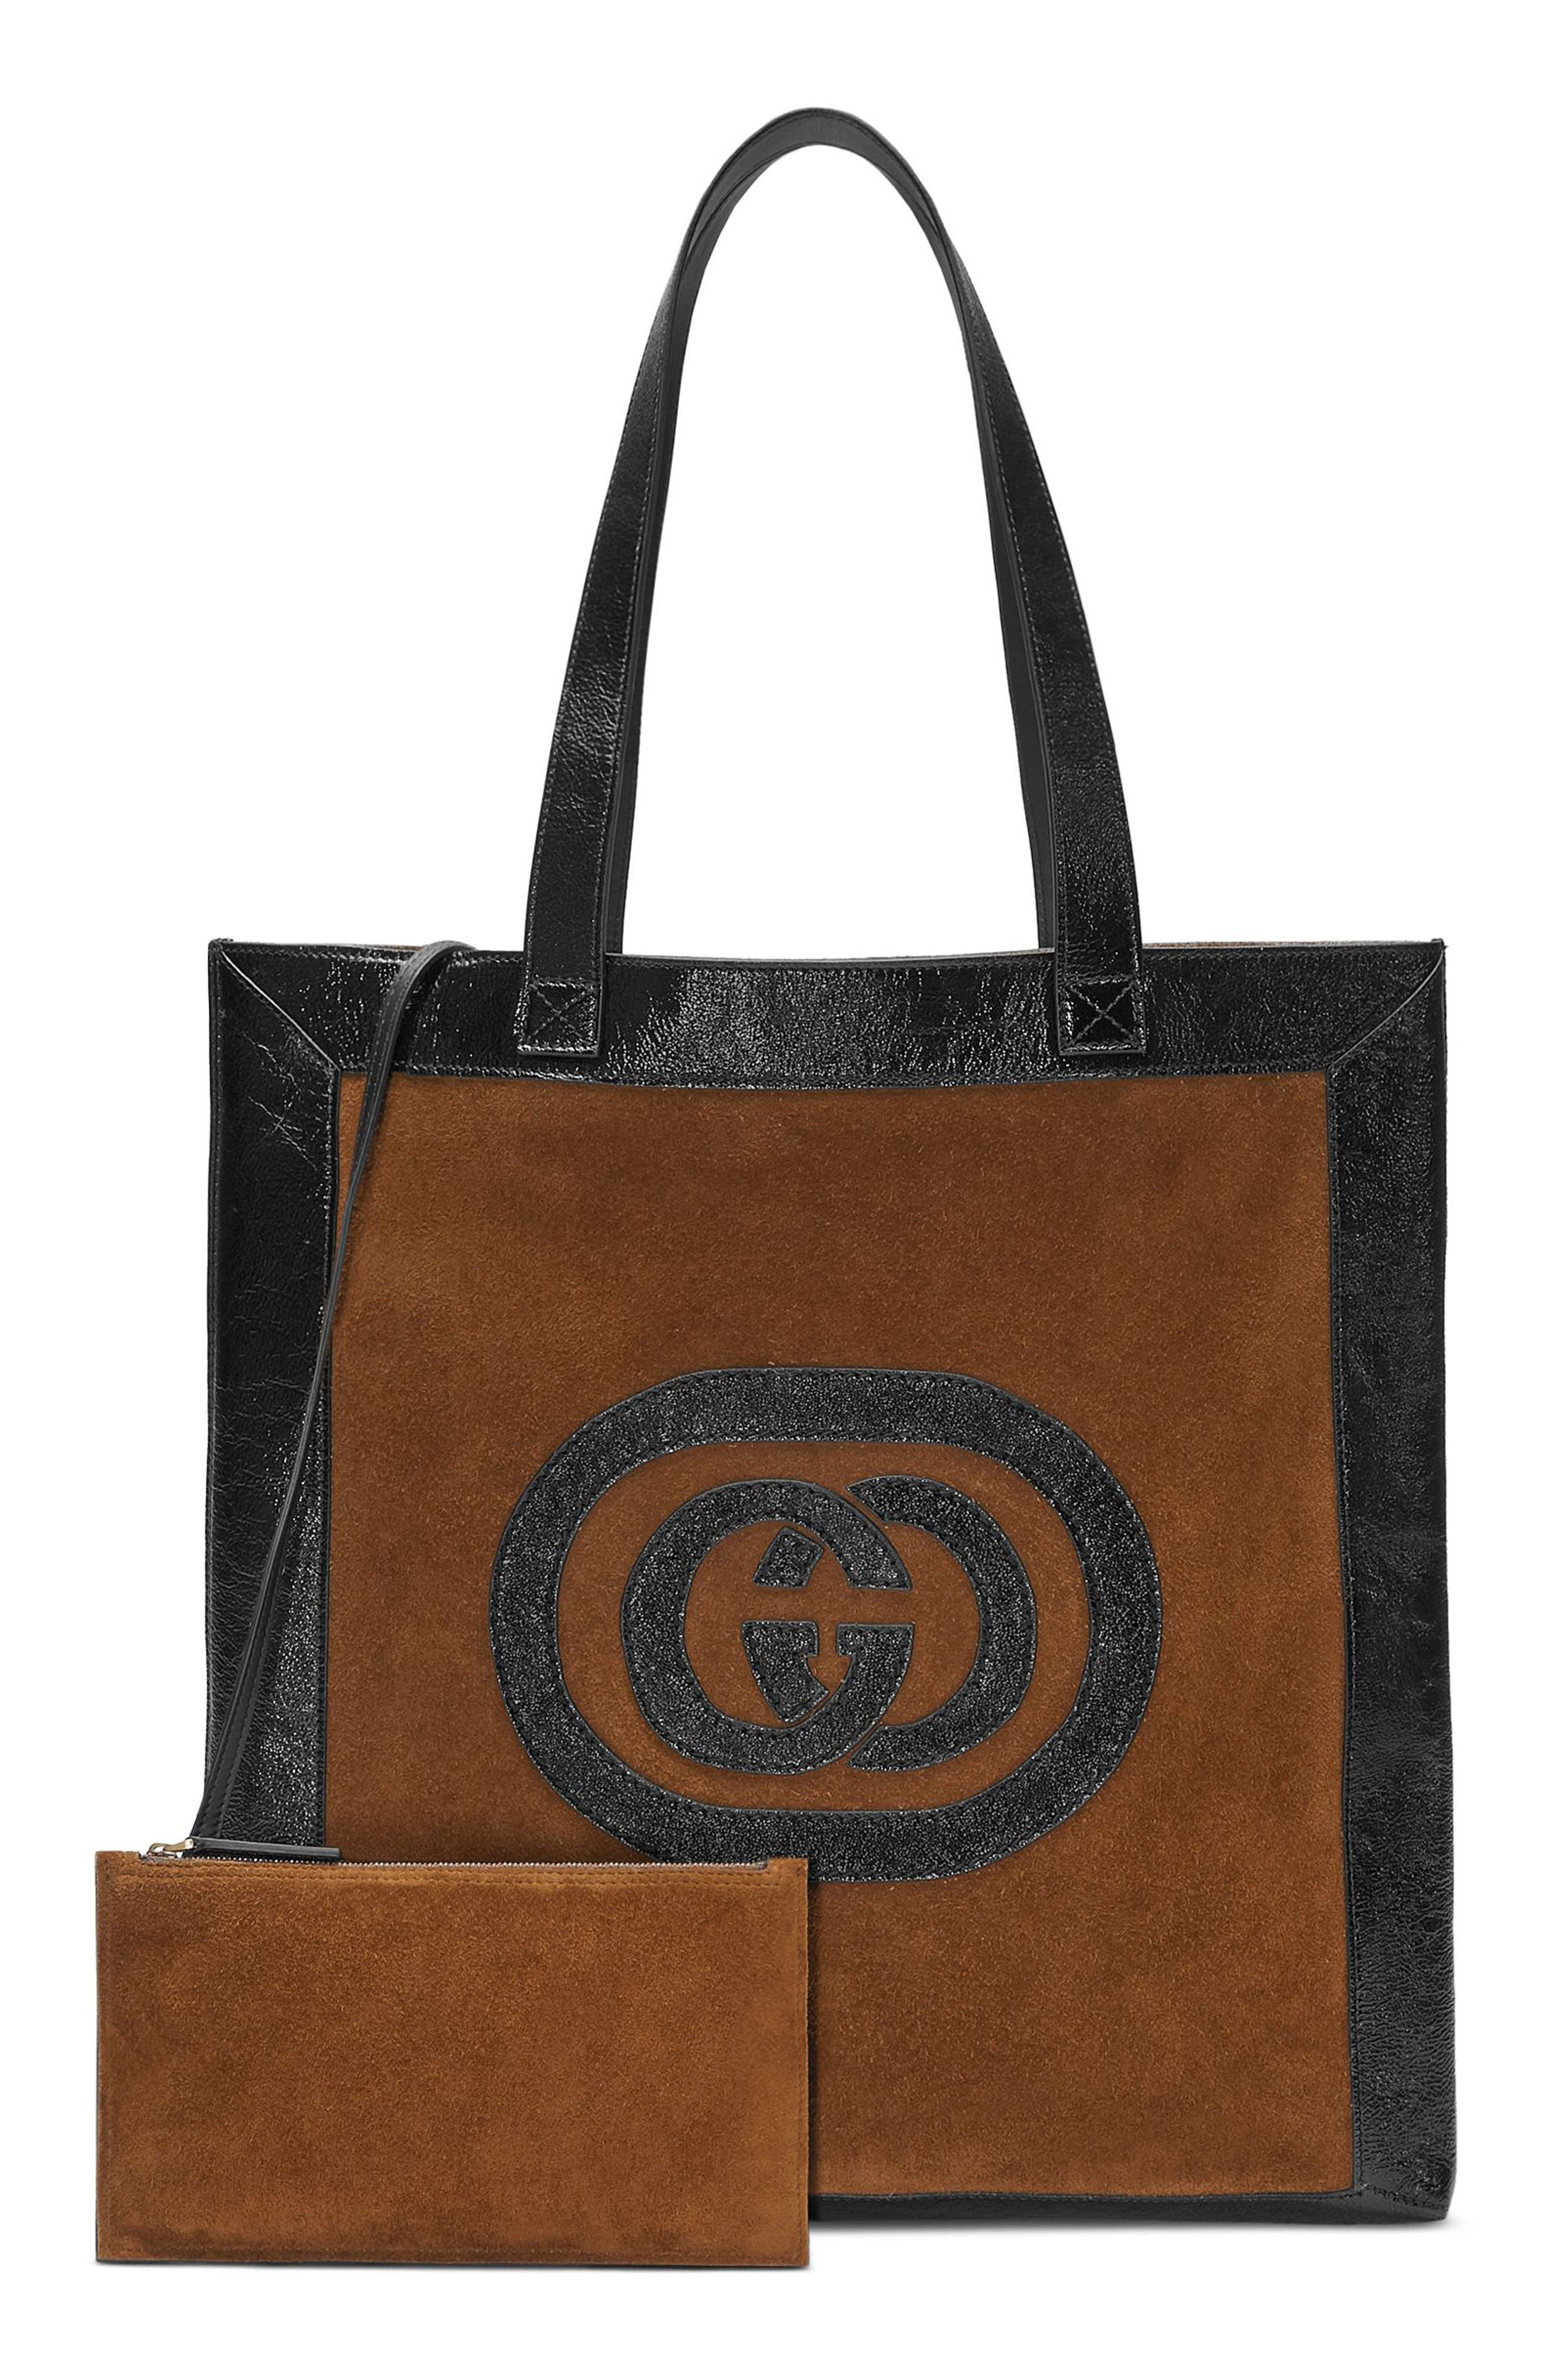 Large GG Calfskin Suede Tote with Zip Pouch,                             Main thumbnail 1, color,                             Brown/ Black